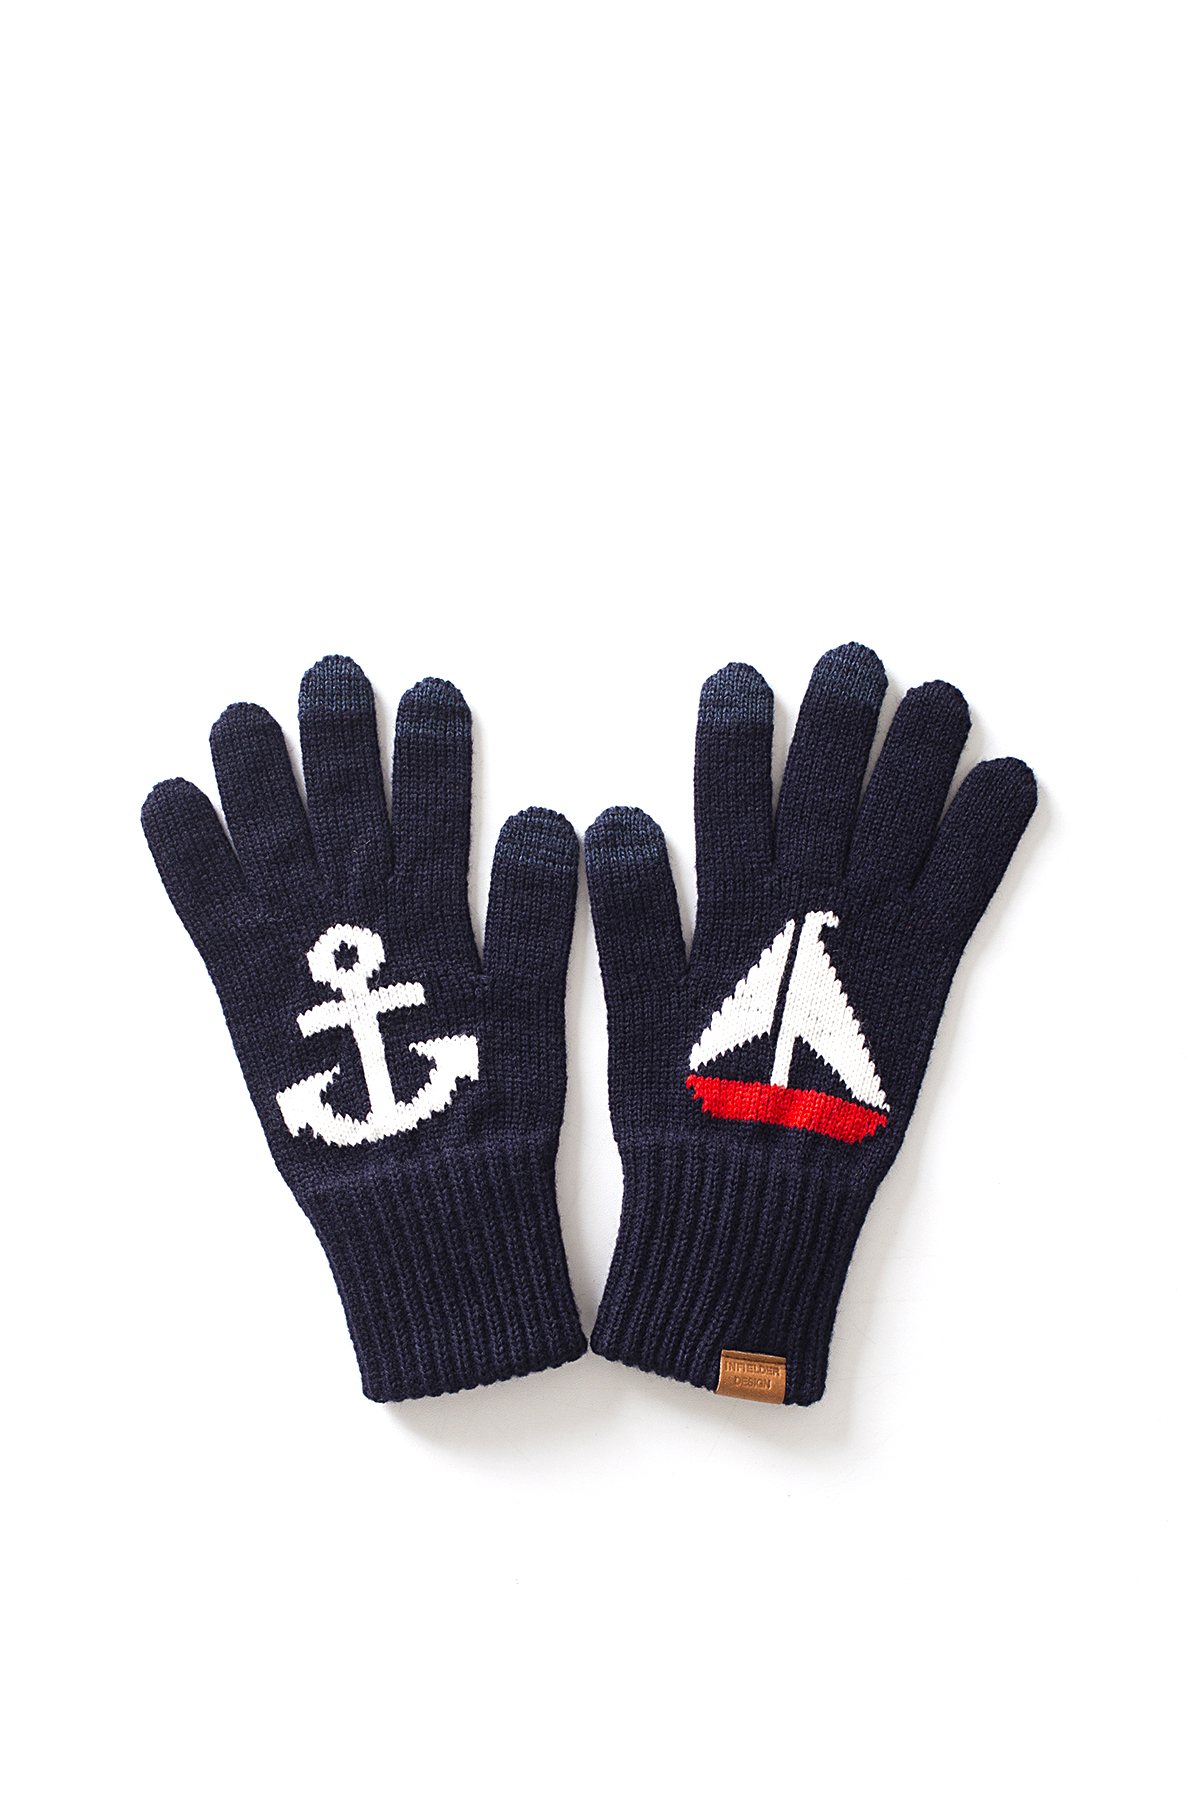 Infielder Design : Anchor & Yacht Gloves (Navy)